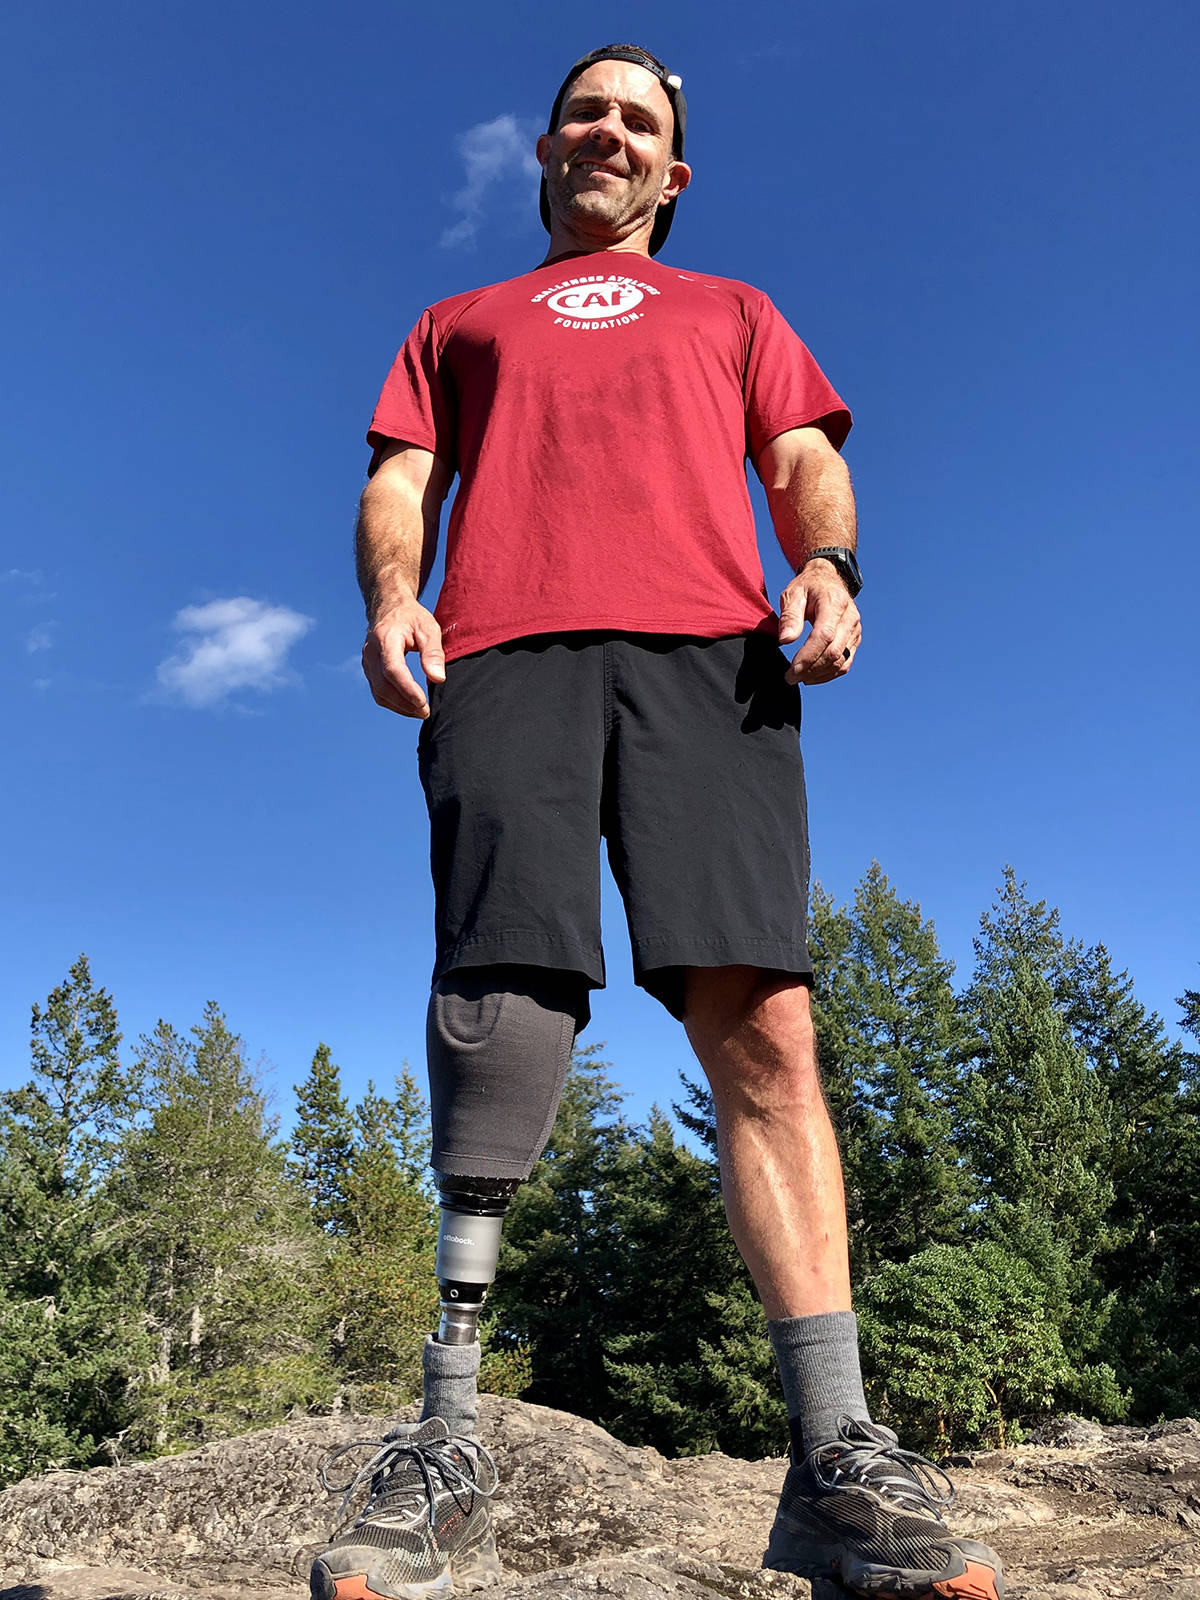 Trevor Coey atop Mount Work in September. Coey longs to run the roads and trails like he did before he lost his leg in an accident three years ago. (Photo courtesy of Trevor Coey)